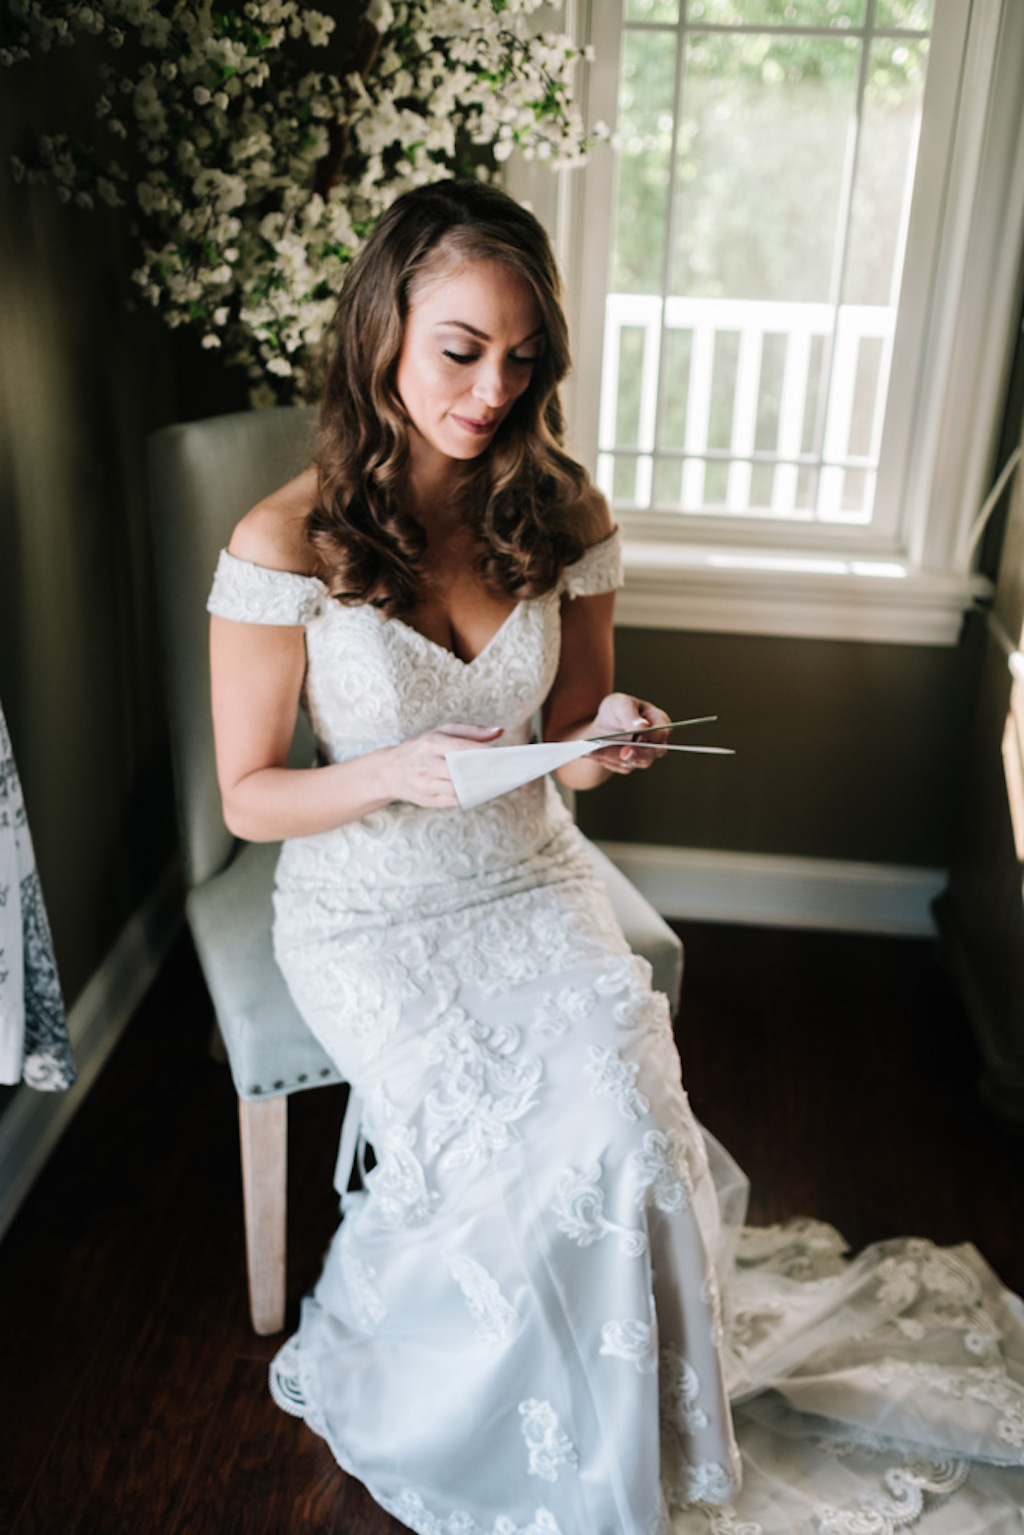 Tampa Bay Bride Reading Letter From Groom On Wedding Day Marry Me